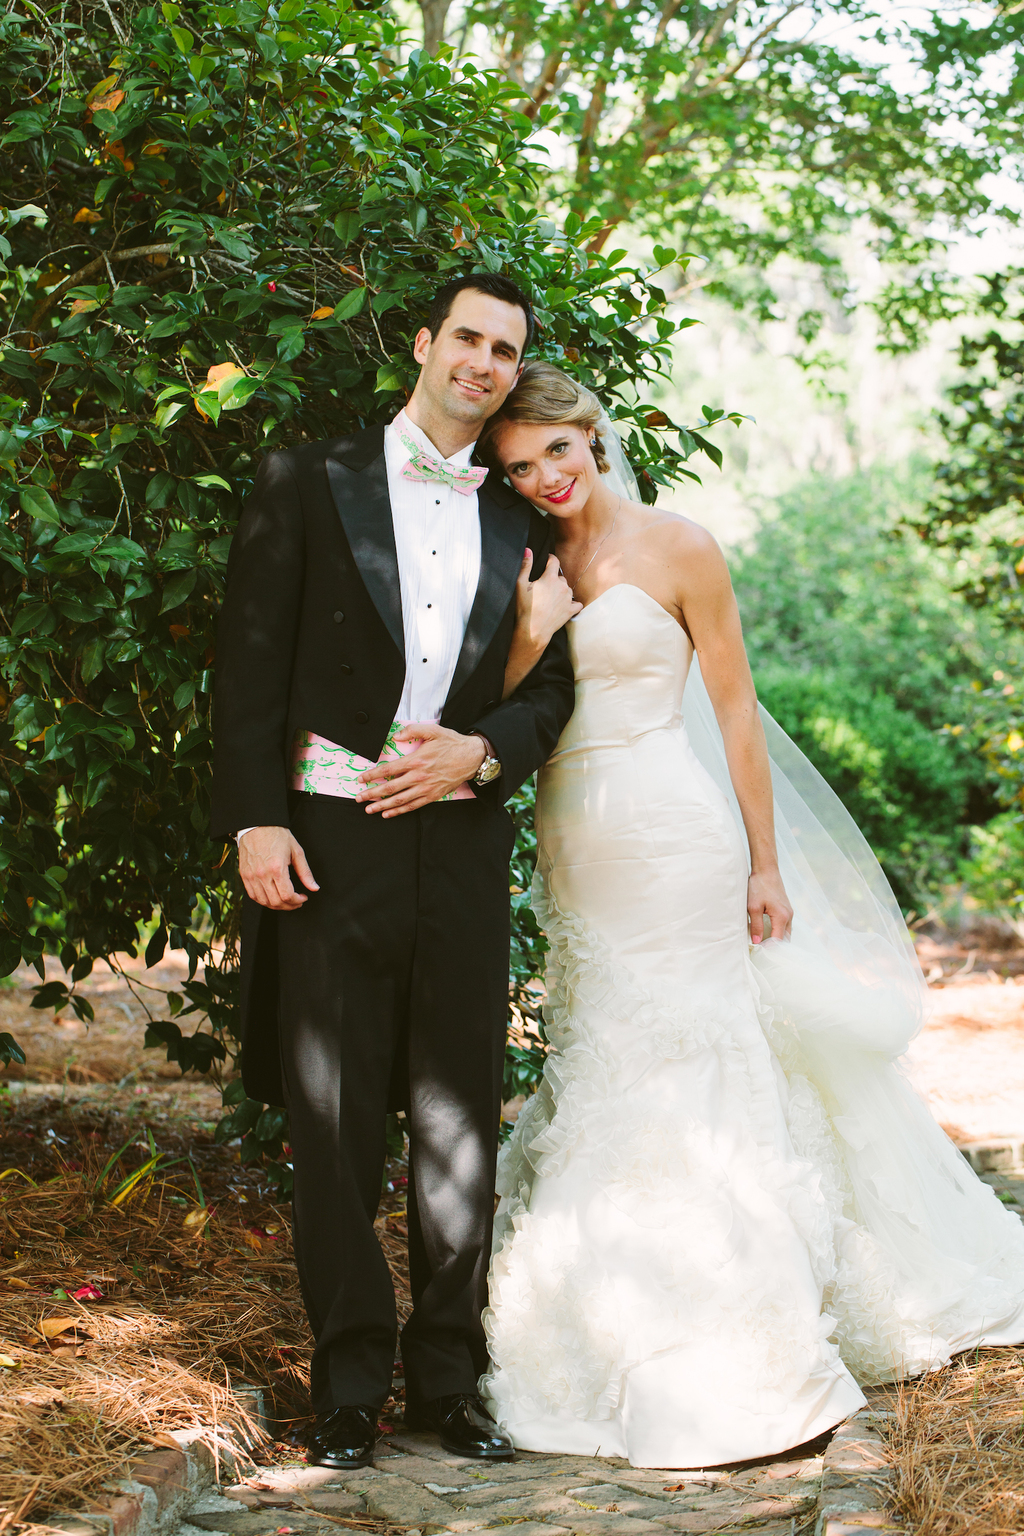 Classic-wedding-perfection-from-the-elegant-bride-and-groom.full